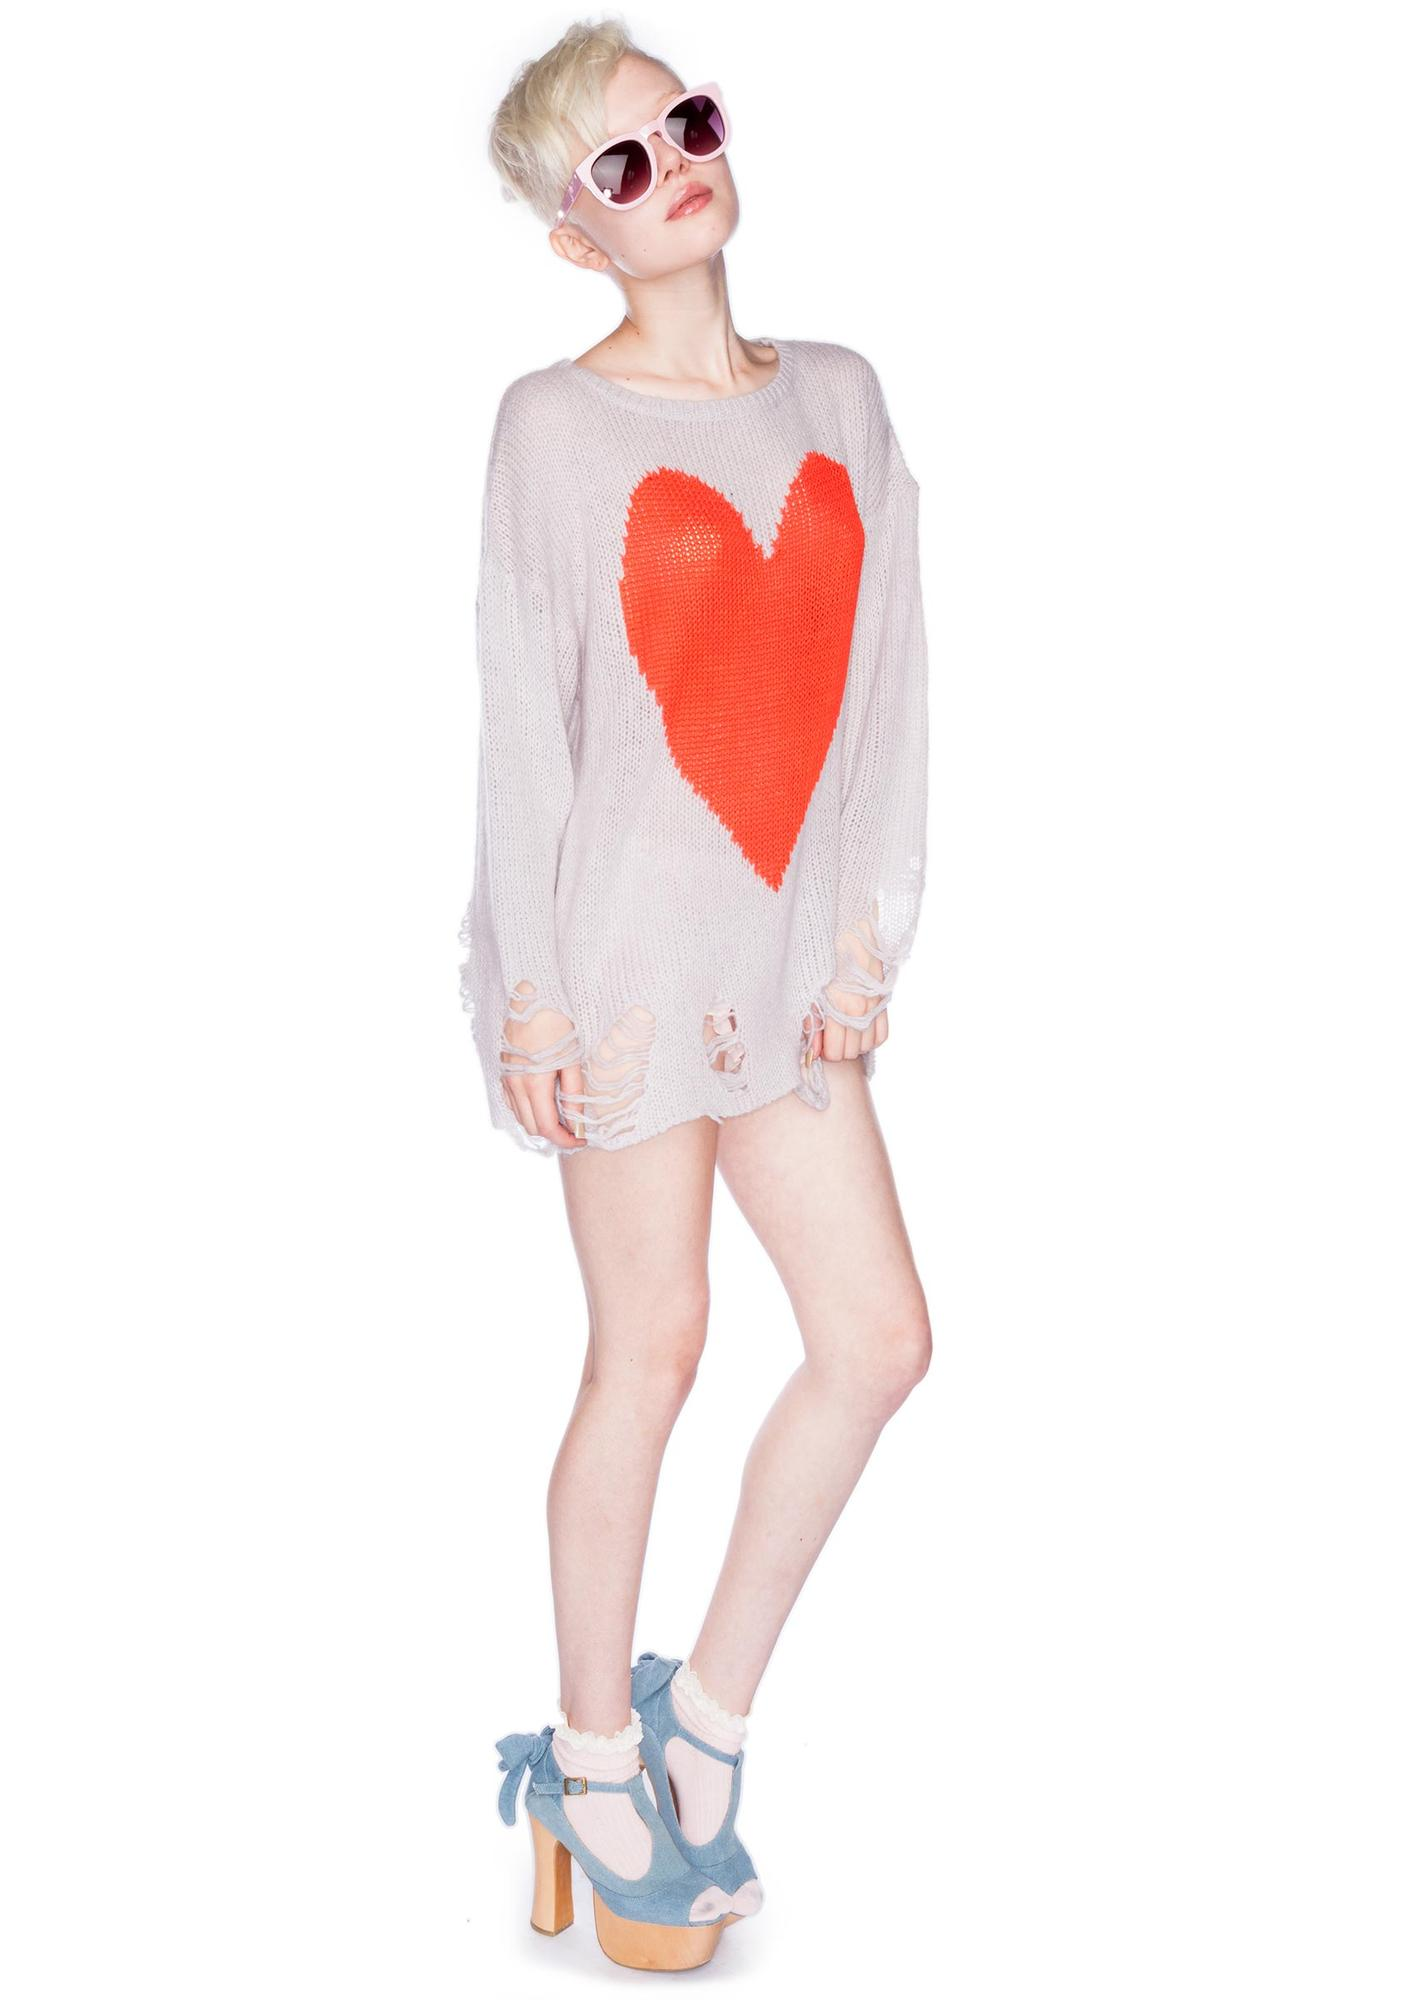 Wildfox Couture Bianca Jagger Lennon Sweater